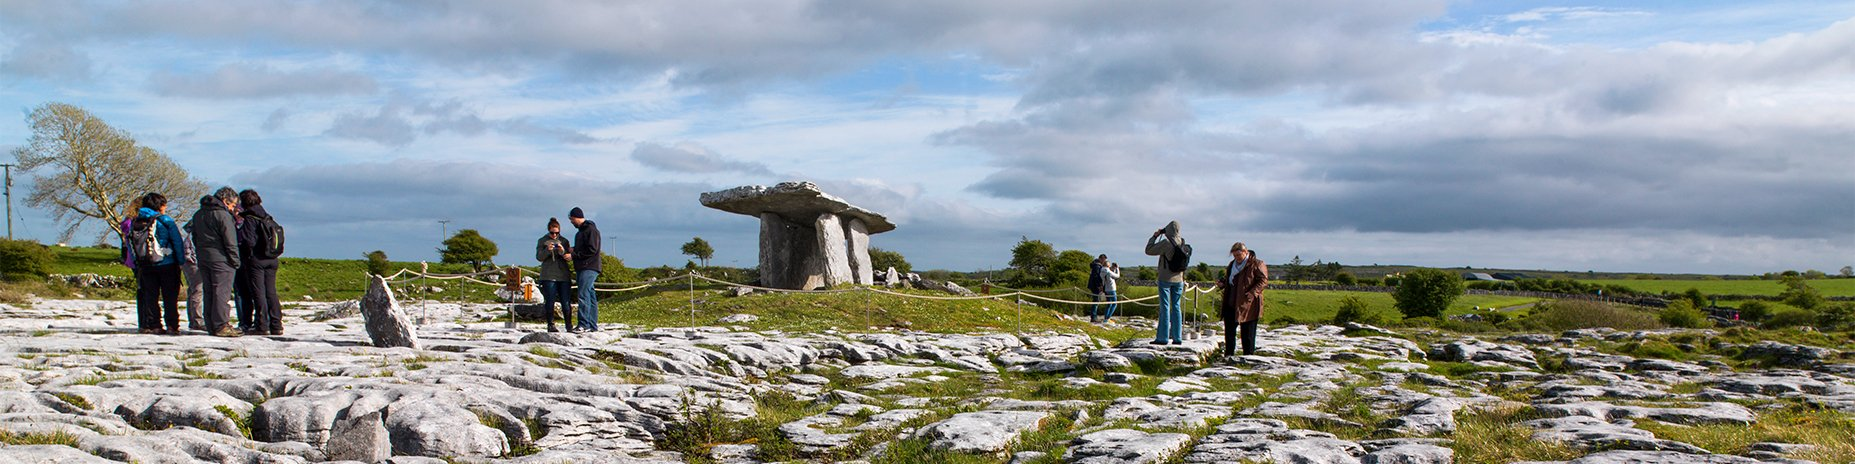 9 Attractions Educating About Irish Nature in the Burren and More